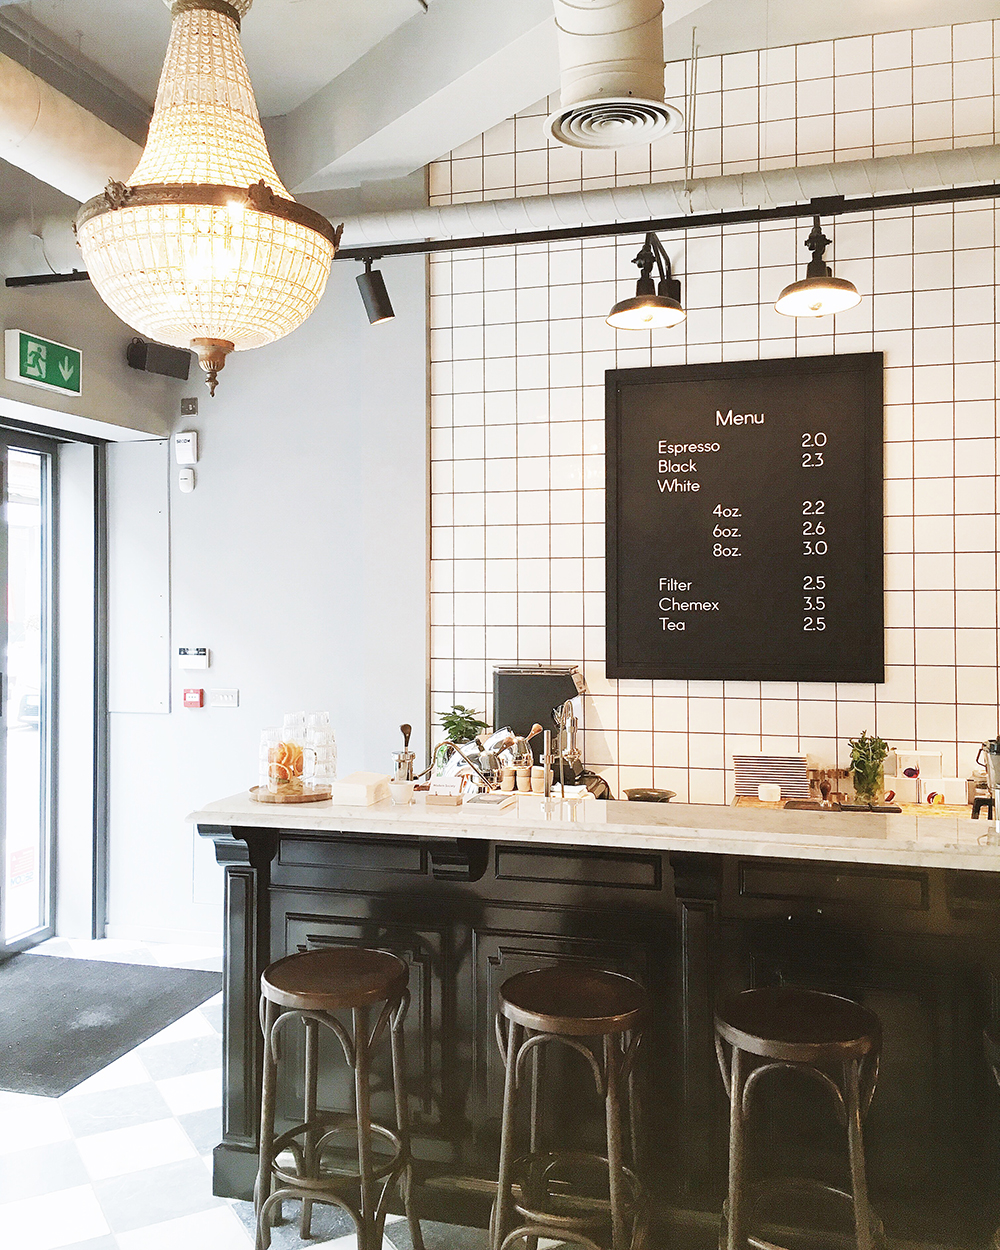 Shoreditch Church: The Fab Guide To Shoreditch, East London & Review Of